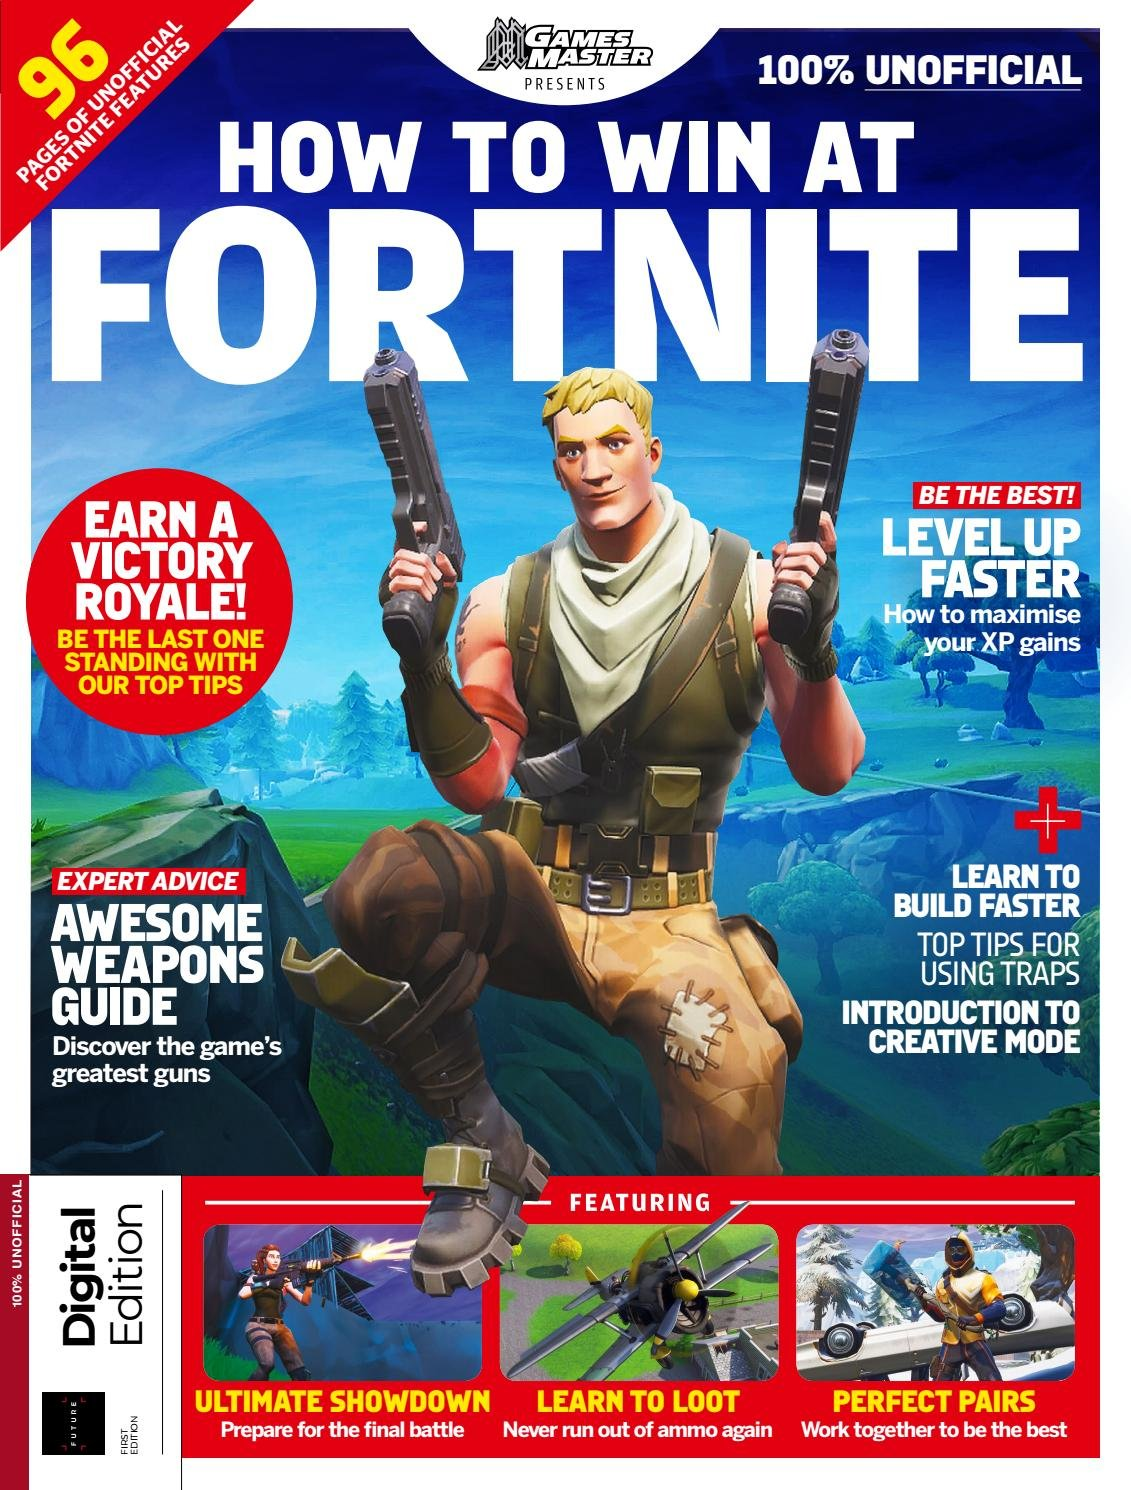 GamesMaster Presents: How to Win at Fortnite (2019)